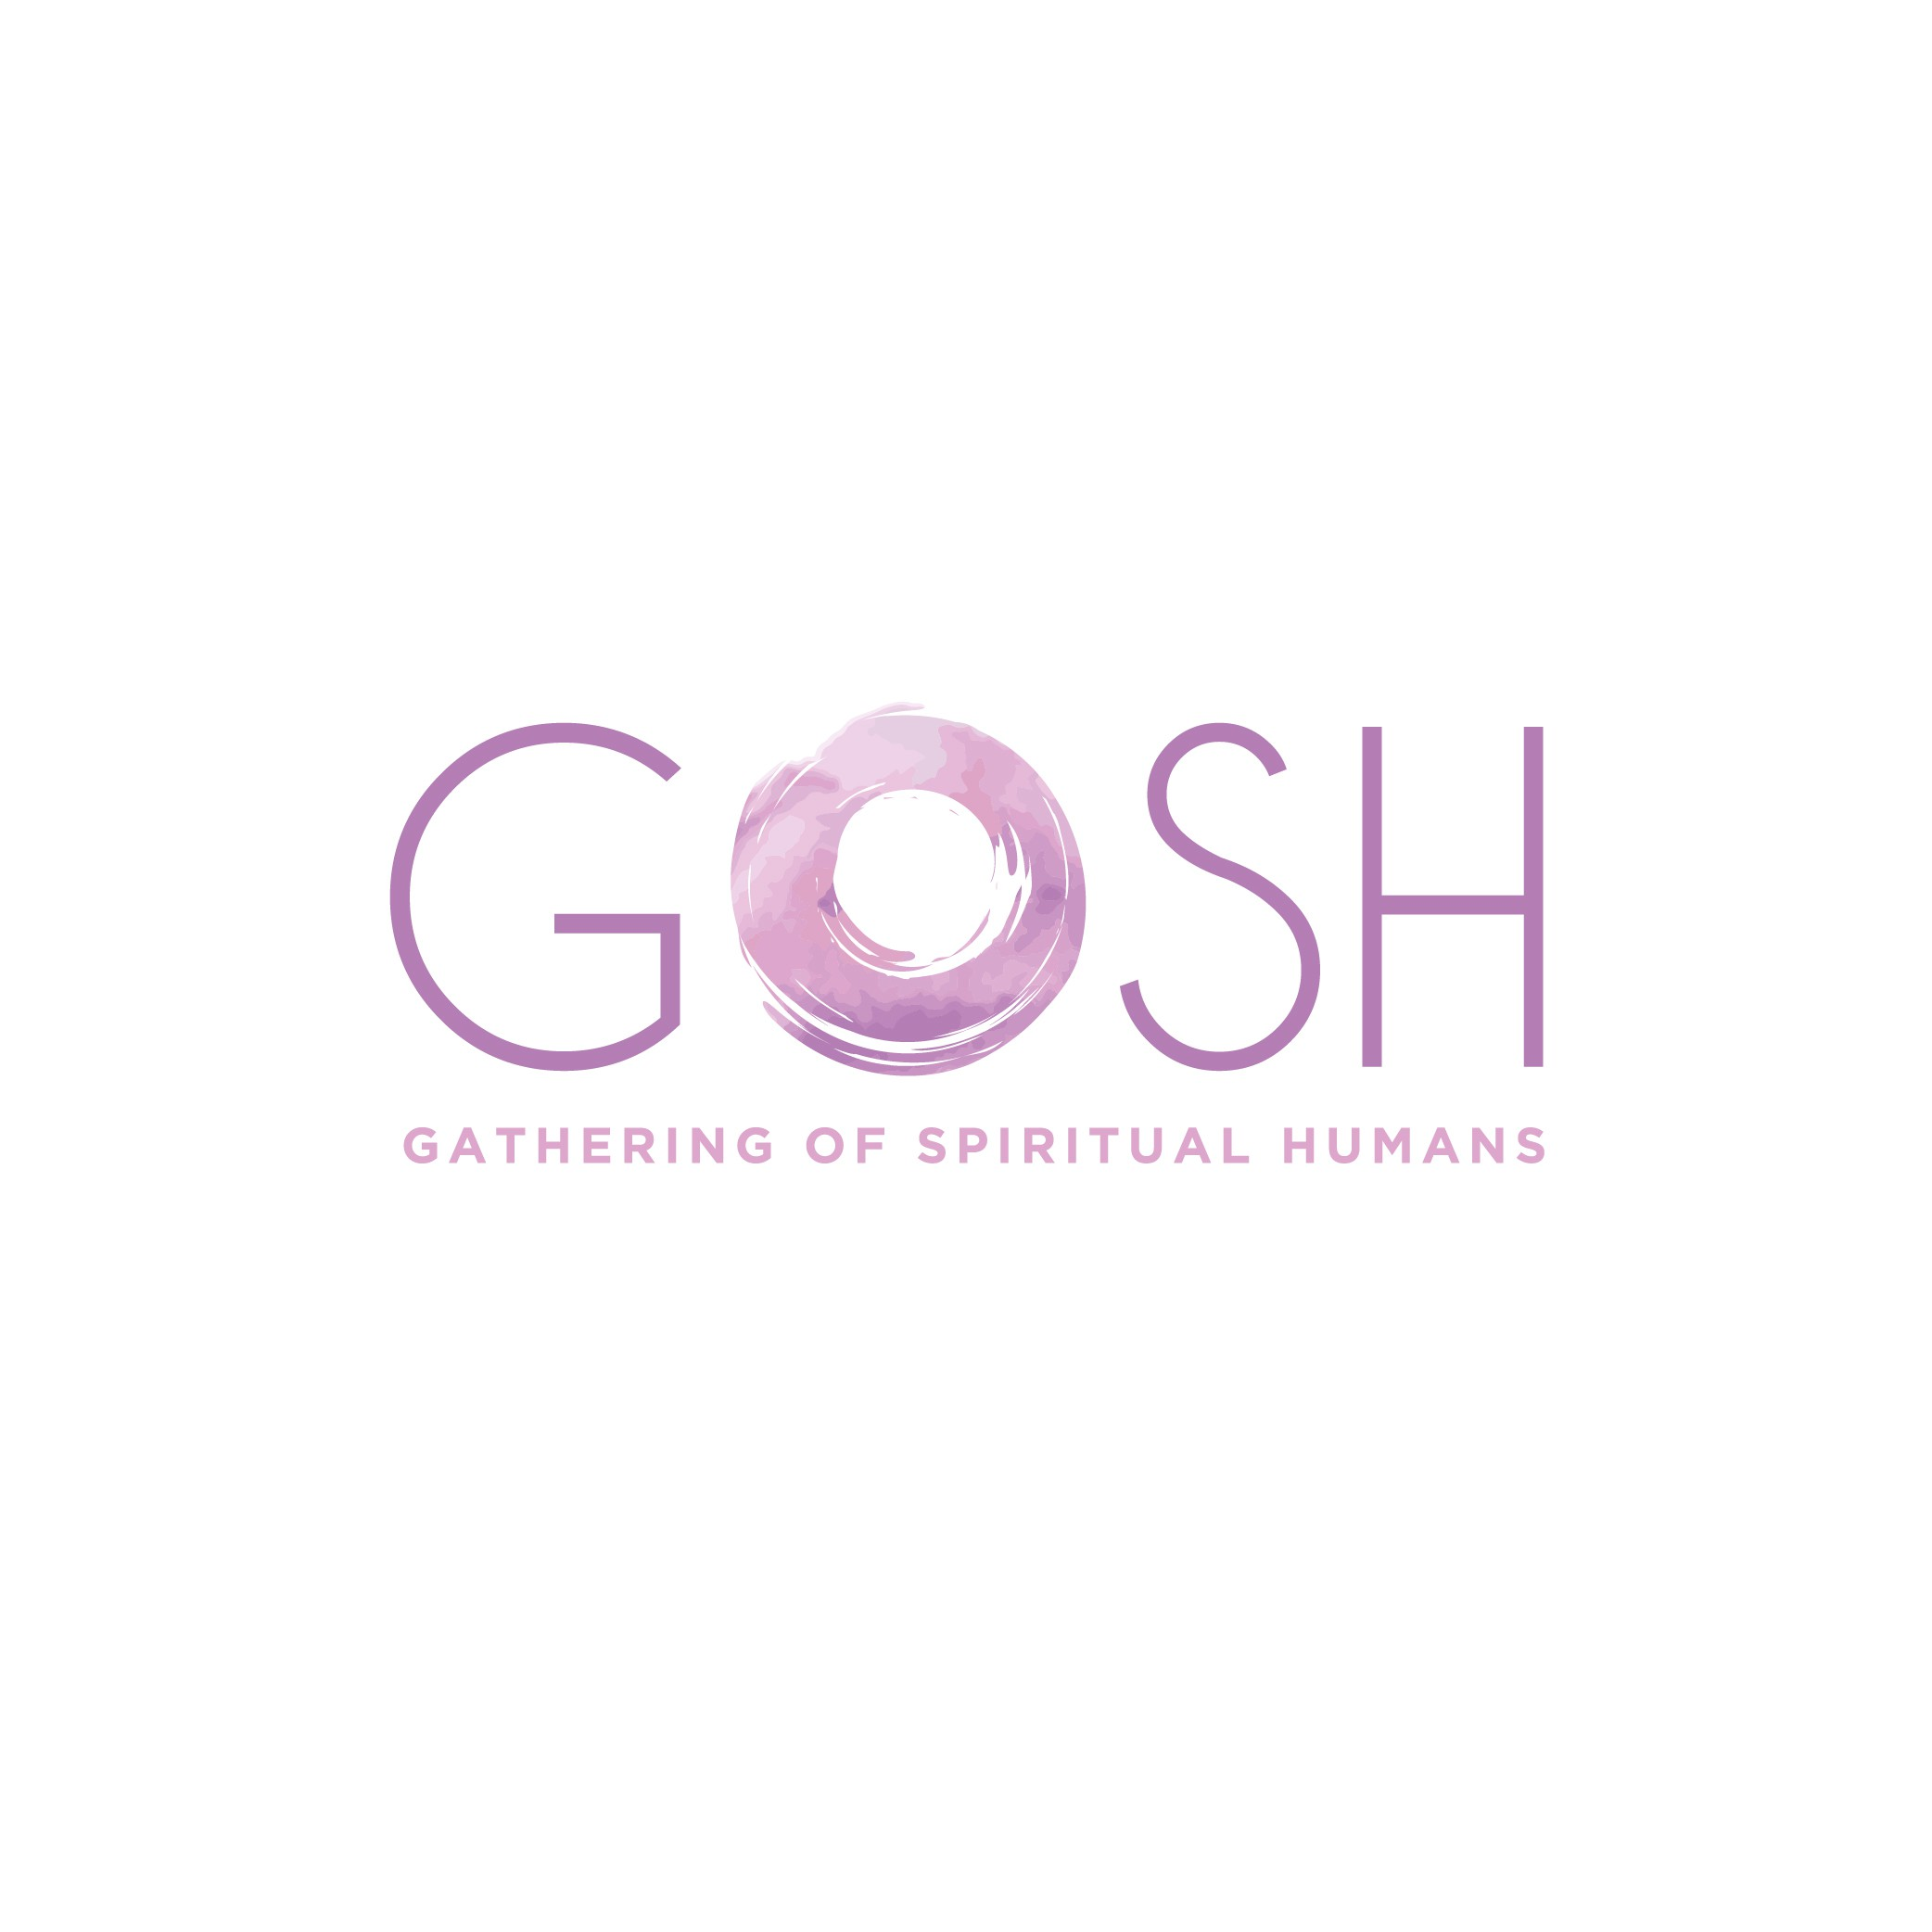 Huge International Gathering of Spiritual Humans